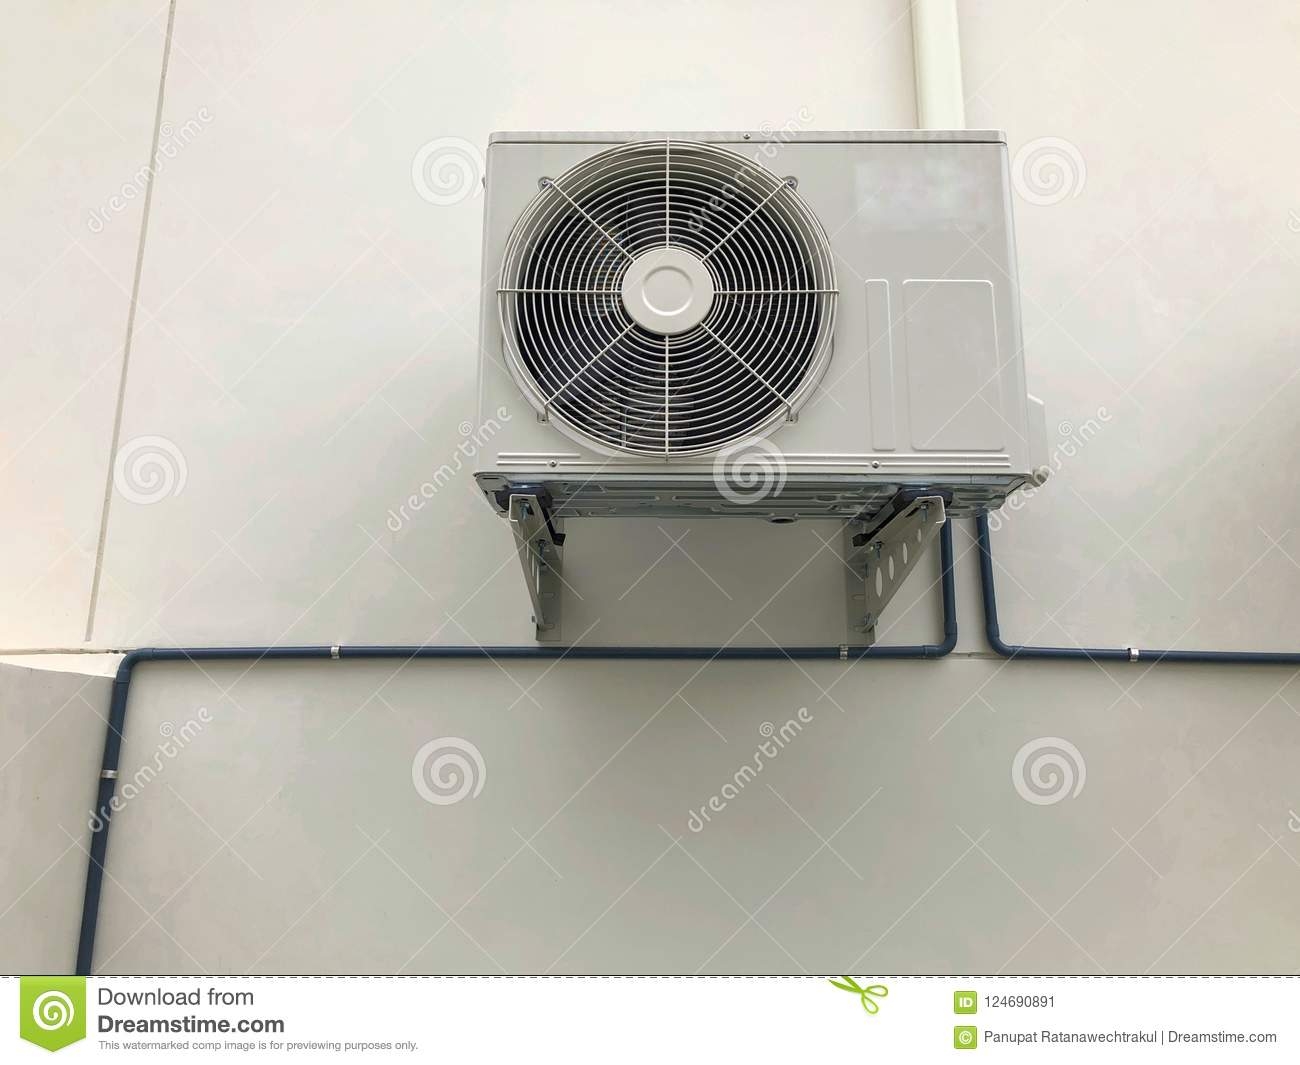 Air conditioner outdoor unit or heat Pump Compressor or Condenser Fan for support Air Conditioner in home .